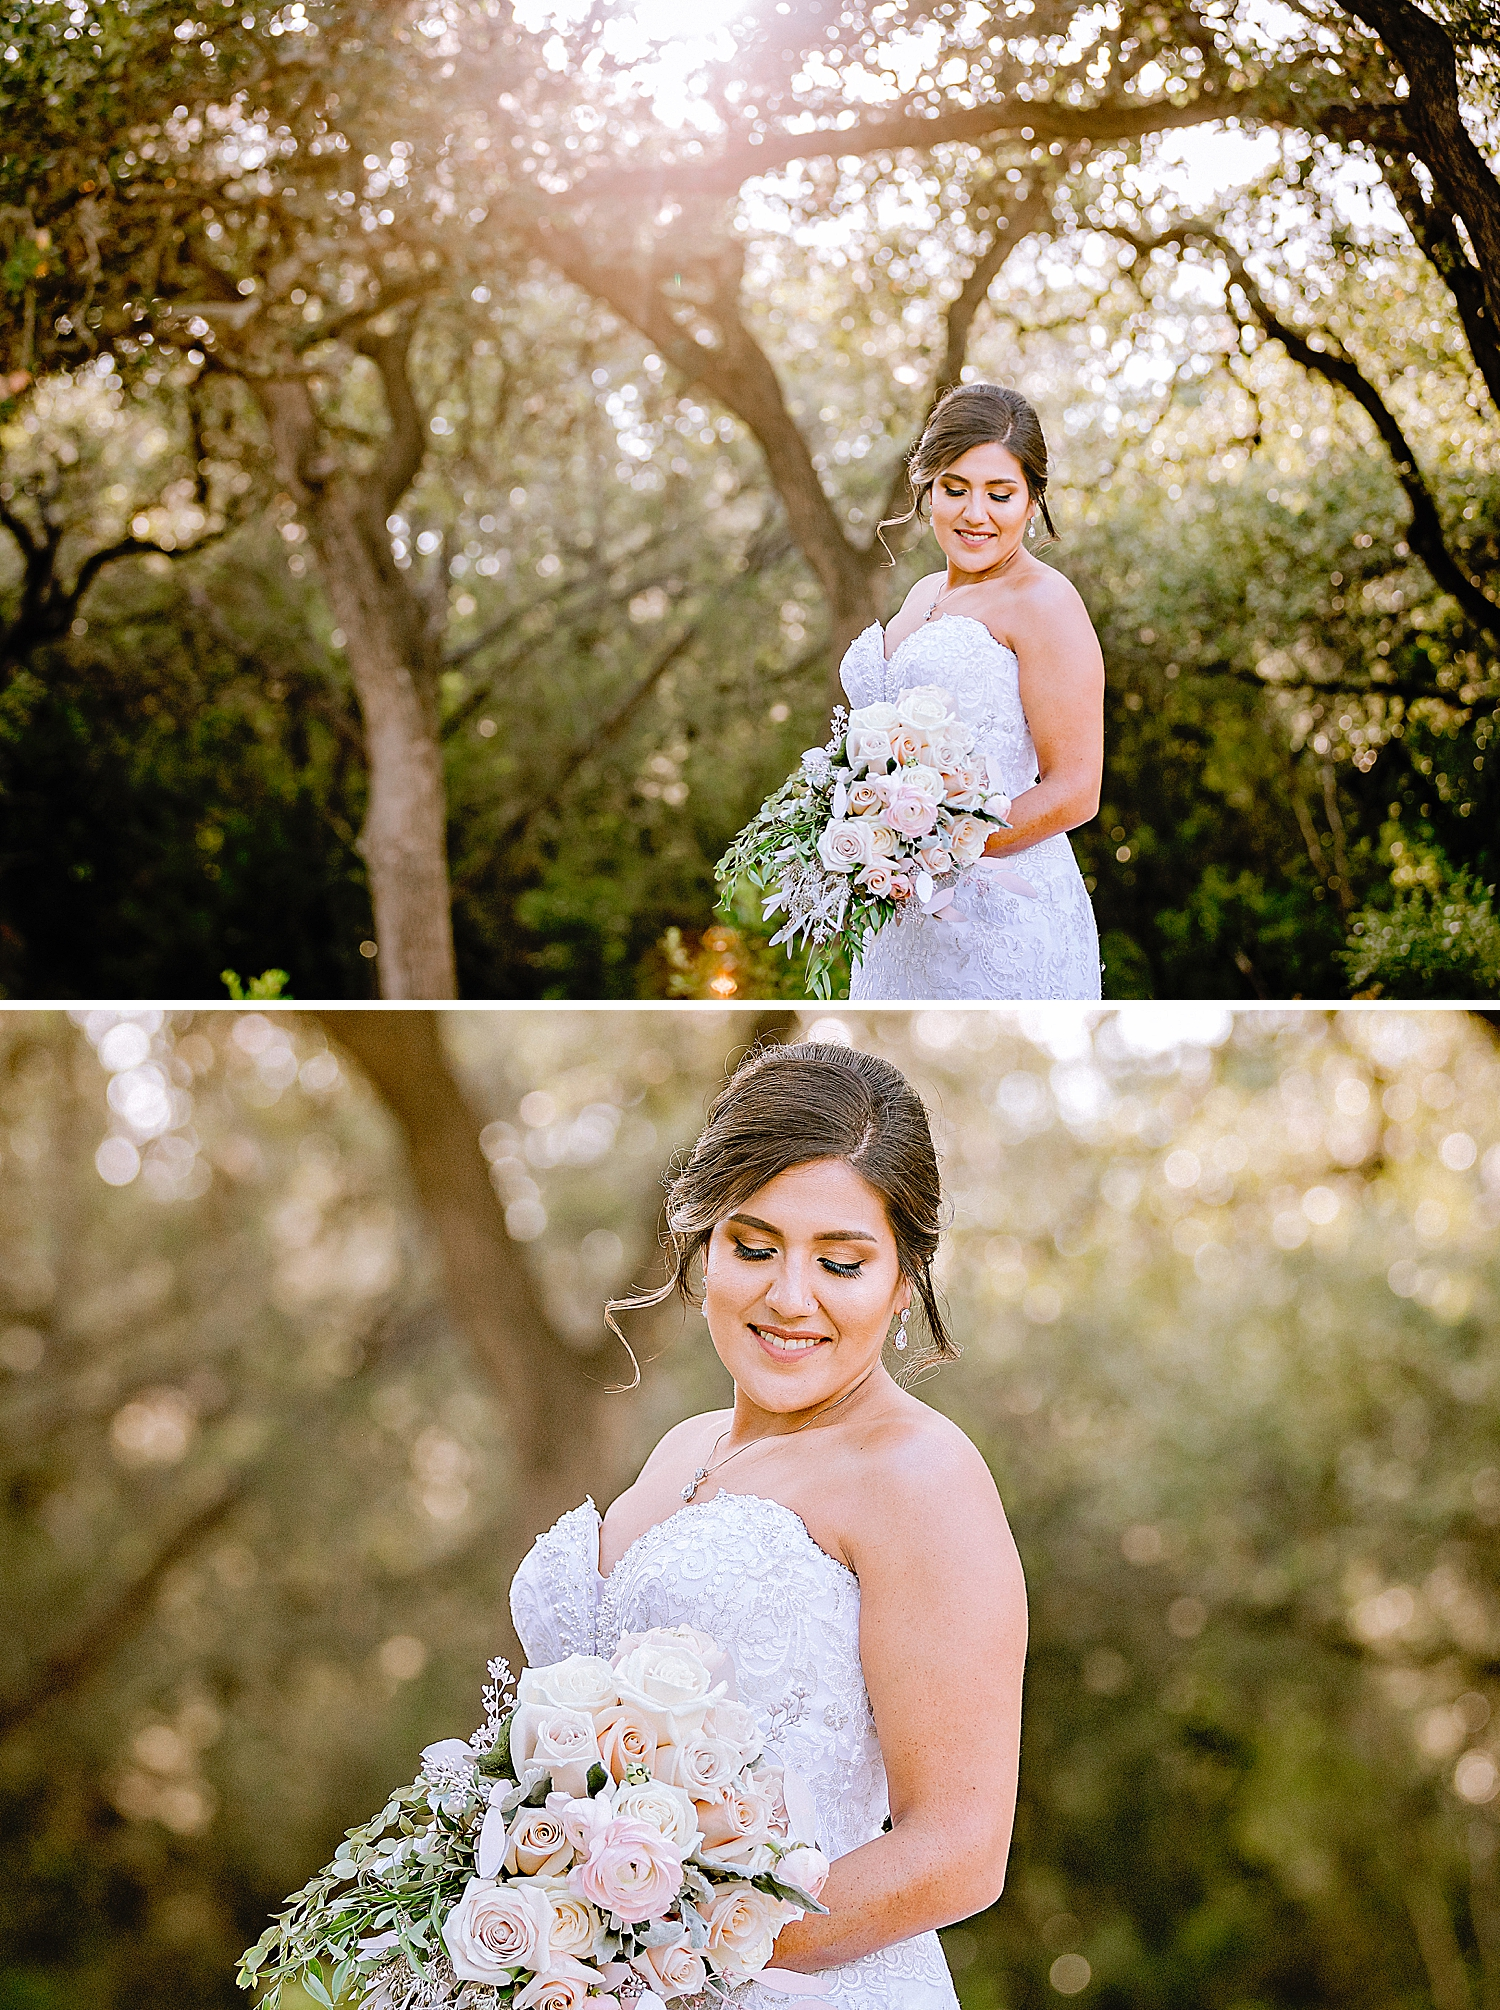 Carly-Barton-Photography-Bridal-Photos-Chadelier-of-Gruene-New-Braunfels-Wedding-Photographer_0013.jpg